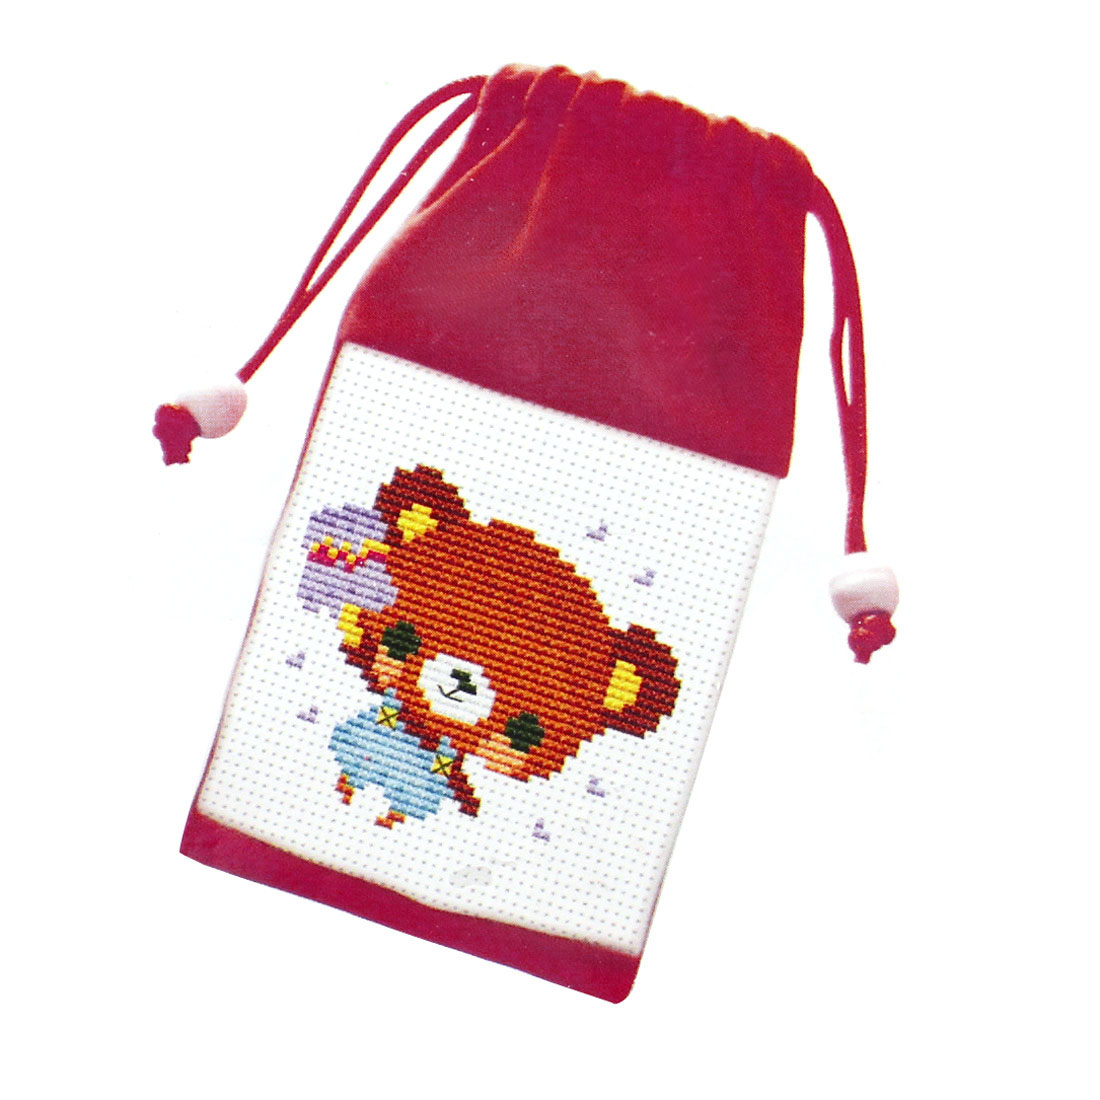 Bear Pattern Cross Stitch Counted Handmade Kit Cell Phone Bag Pouch